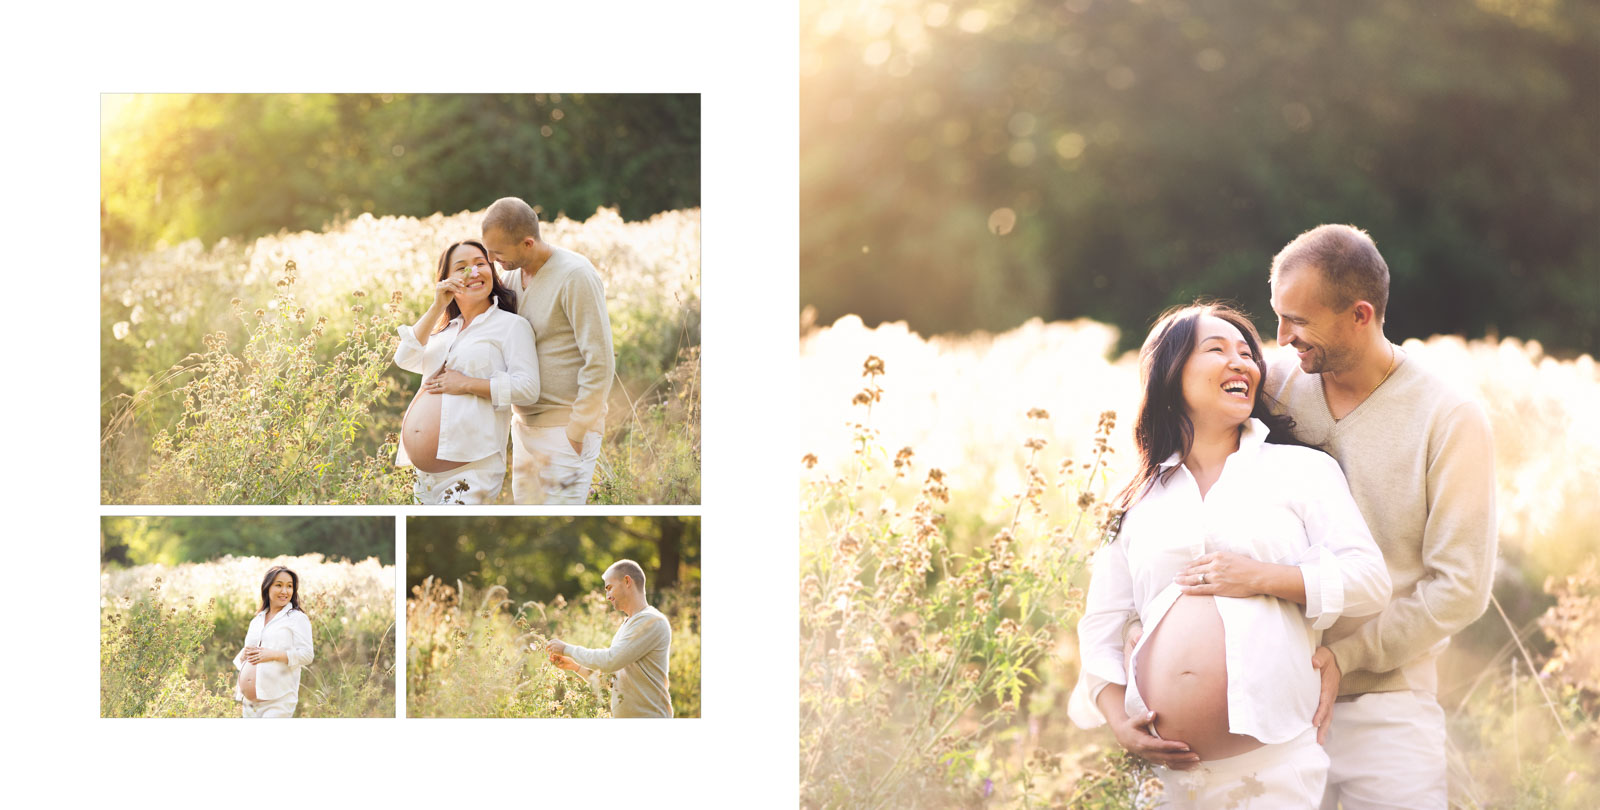 Vancouver maternity photographer - jana photography